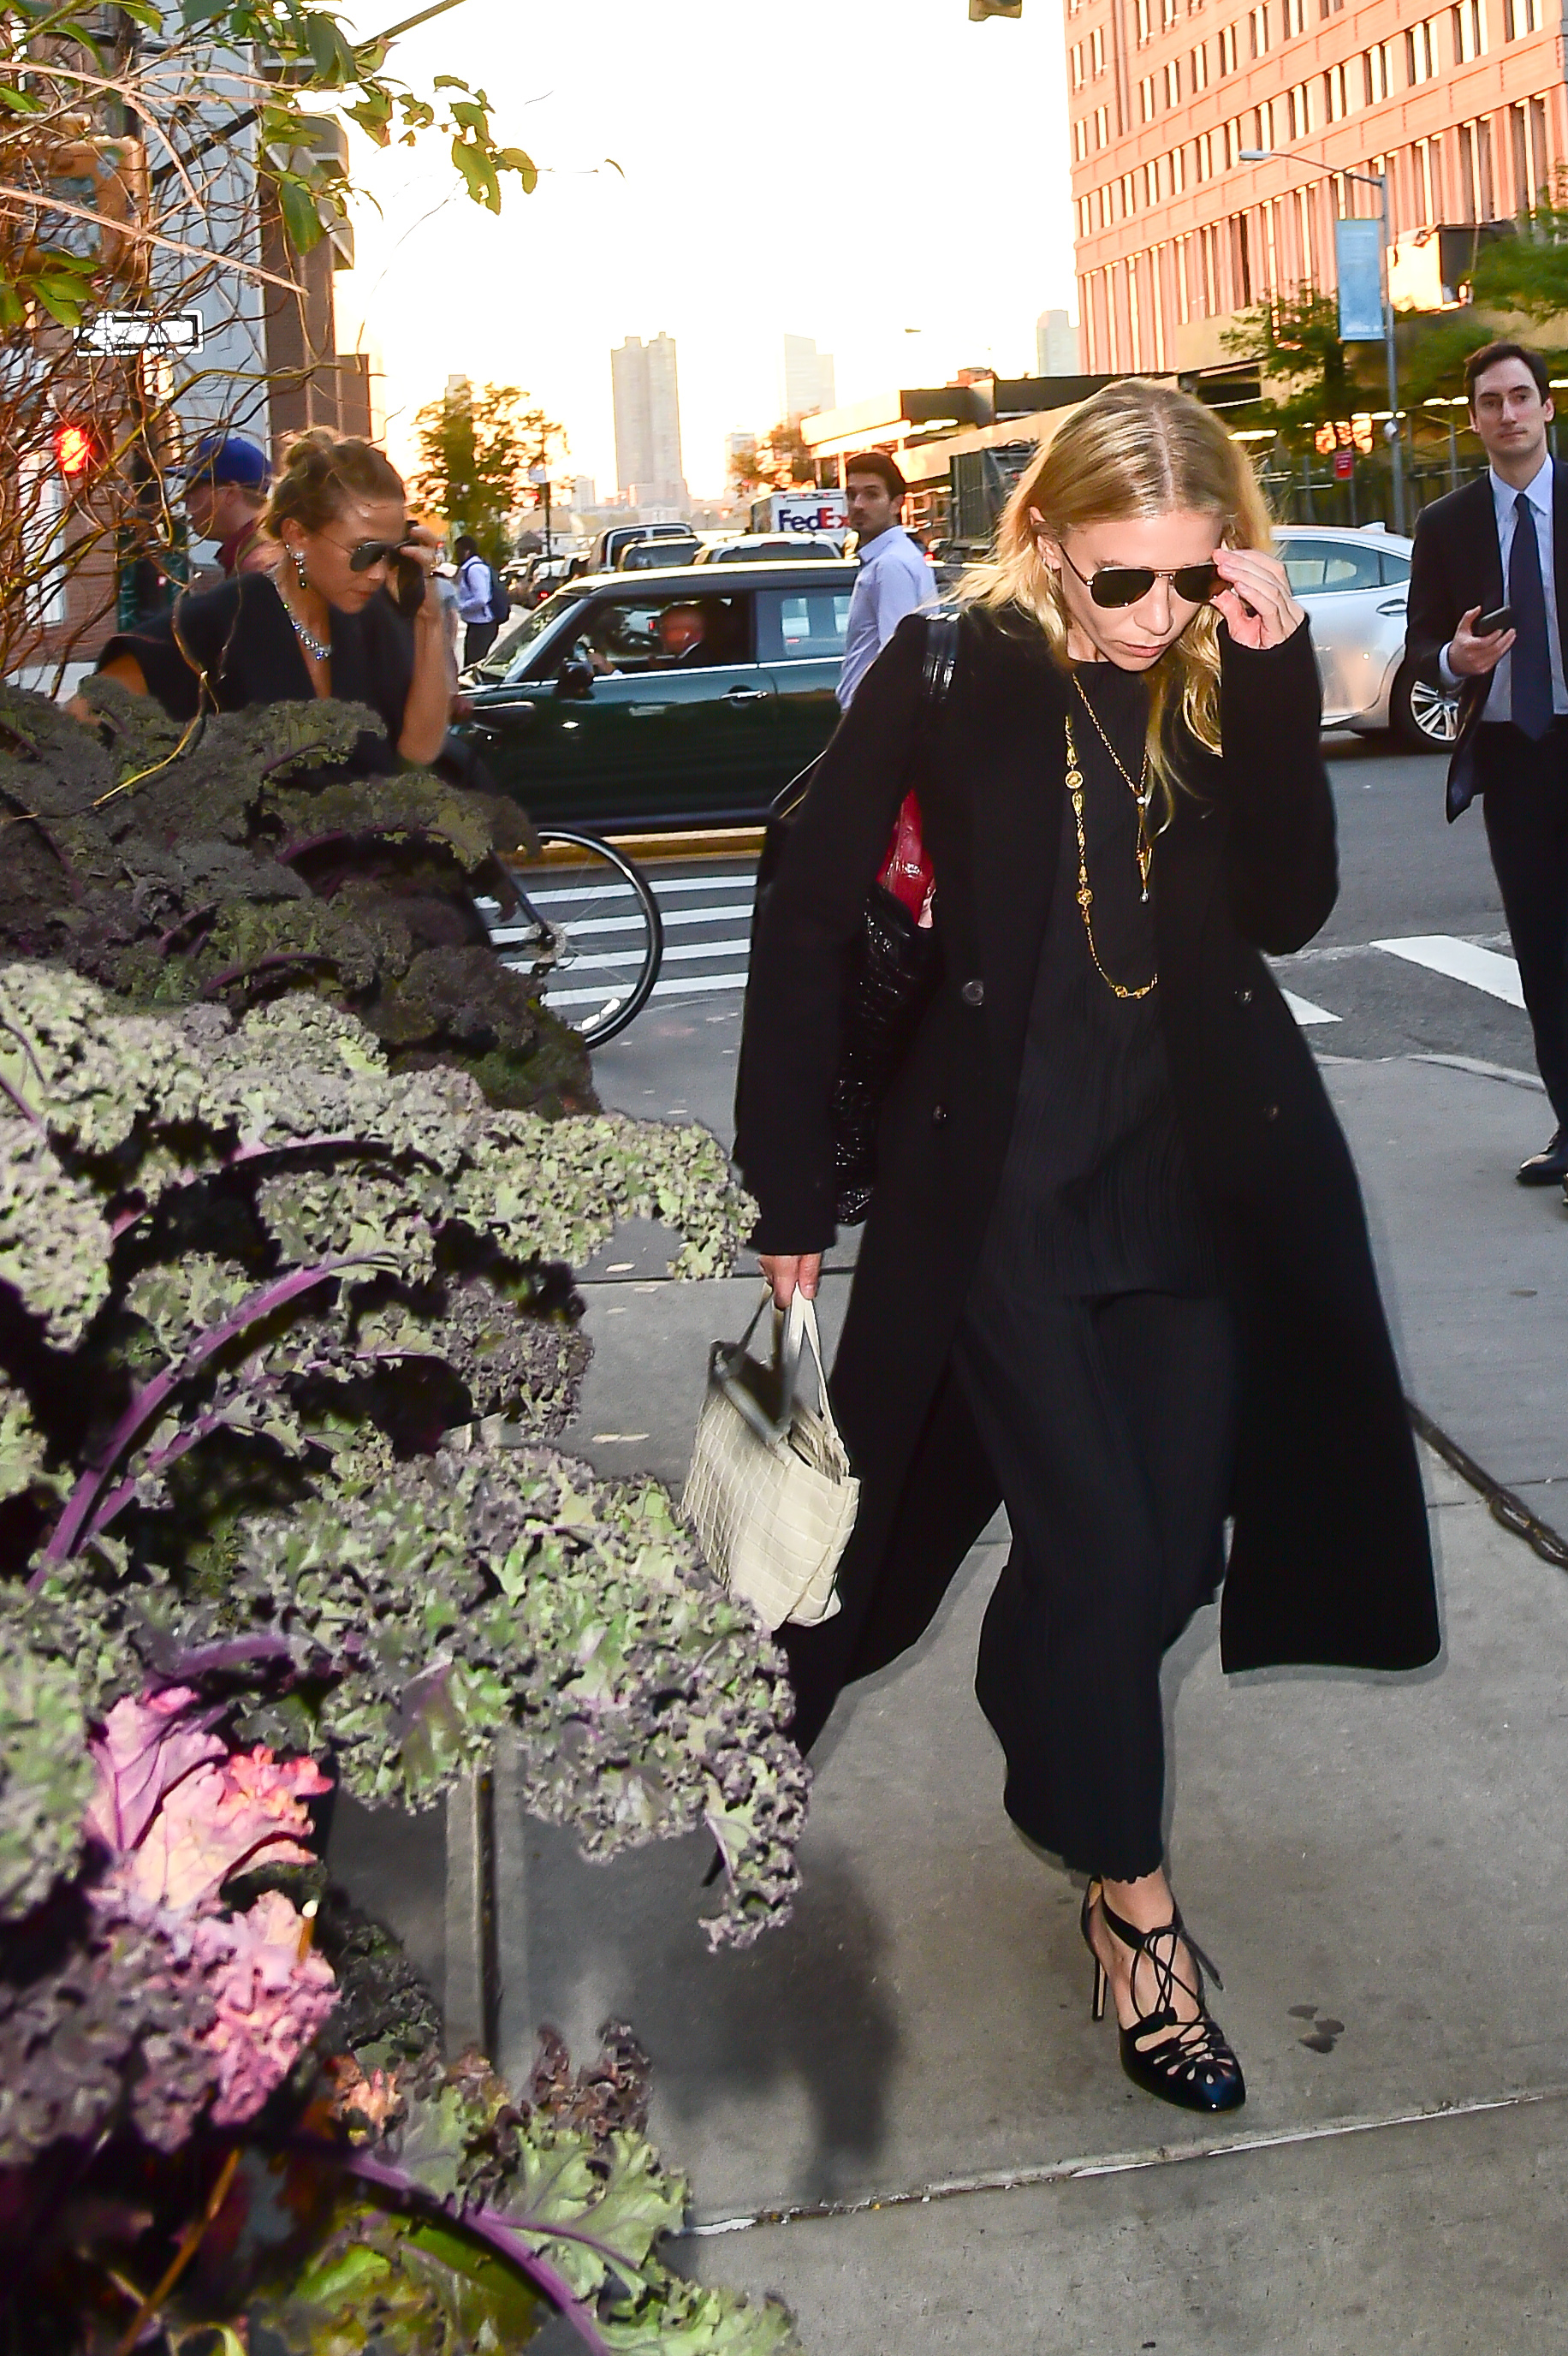 NEW YORK, NY - OCTOBER 19: Mary Kate and Ashley are seen walking in Soho on October 19, 2016 in New York City. (Photo by Raymond Hall/GC Images)